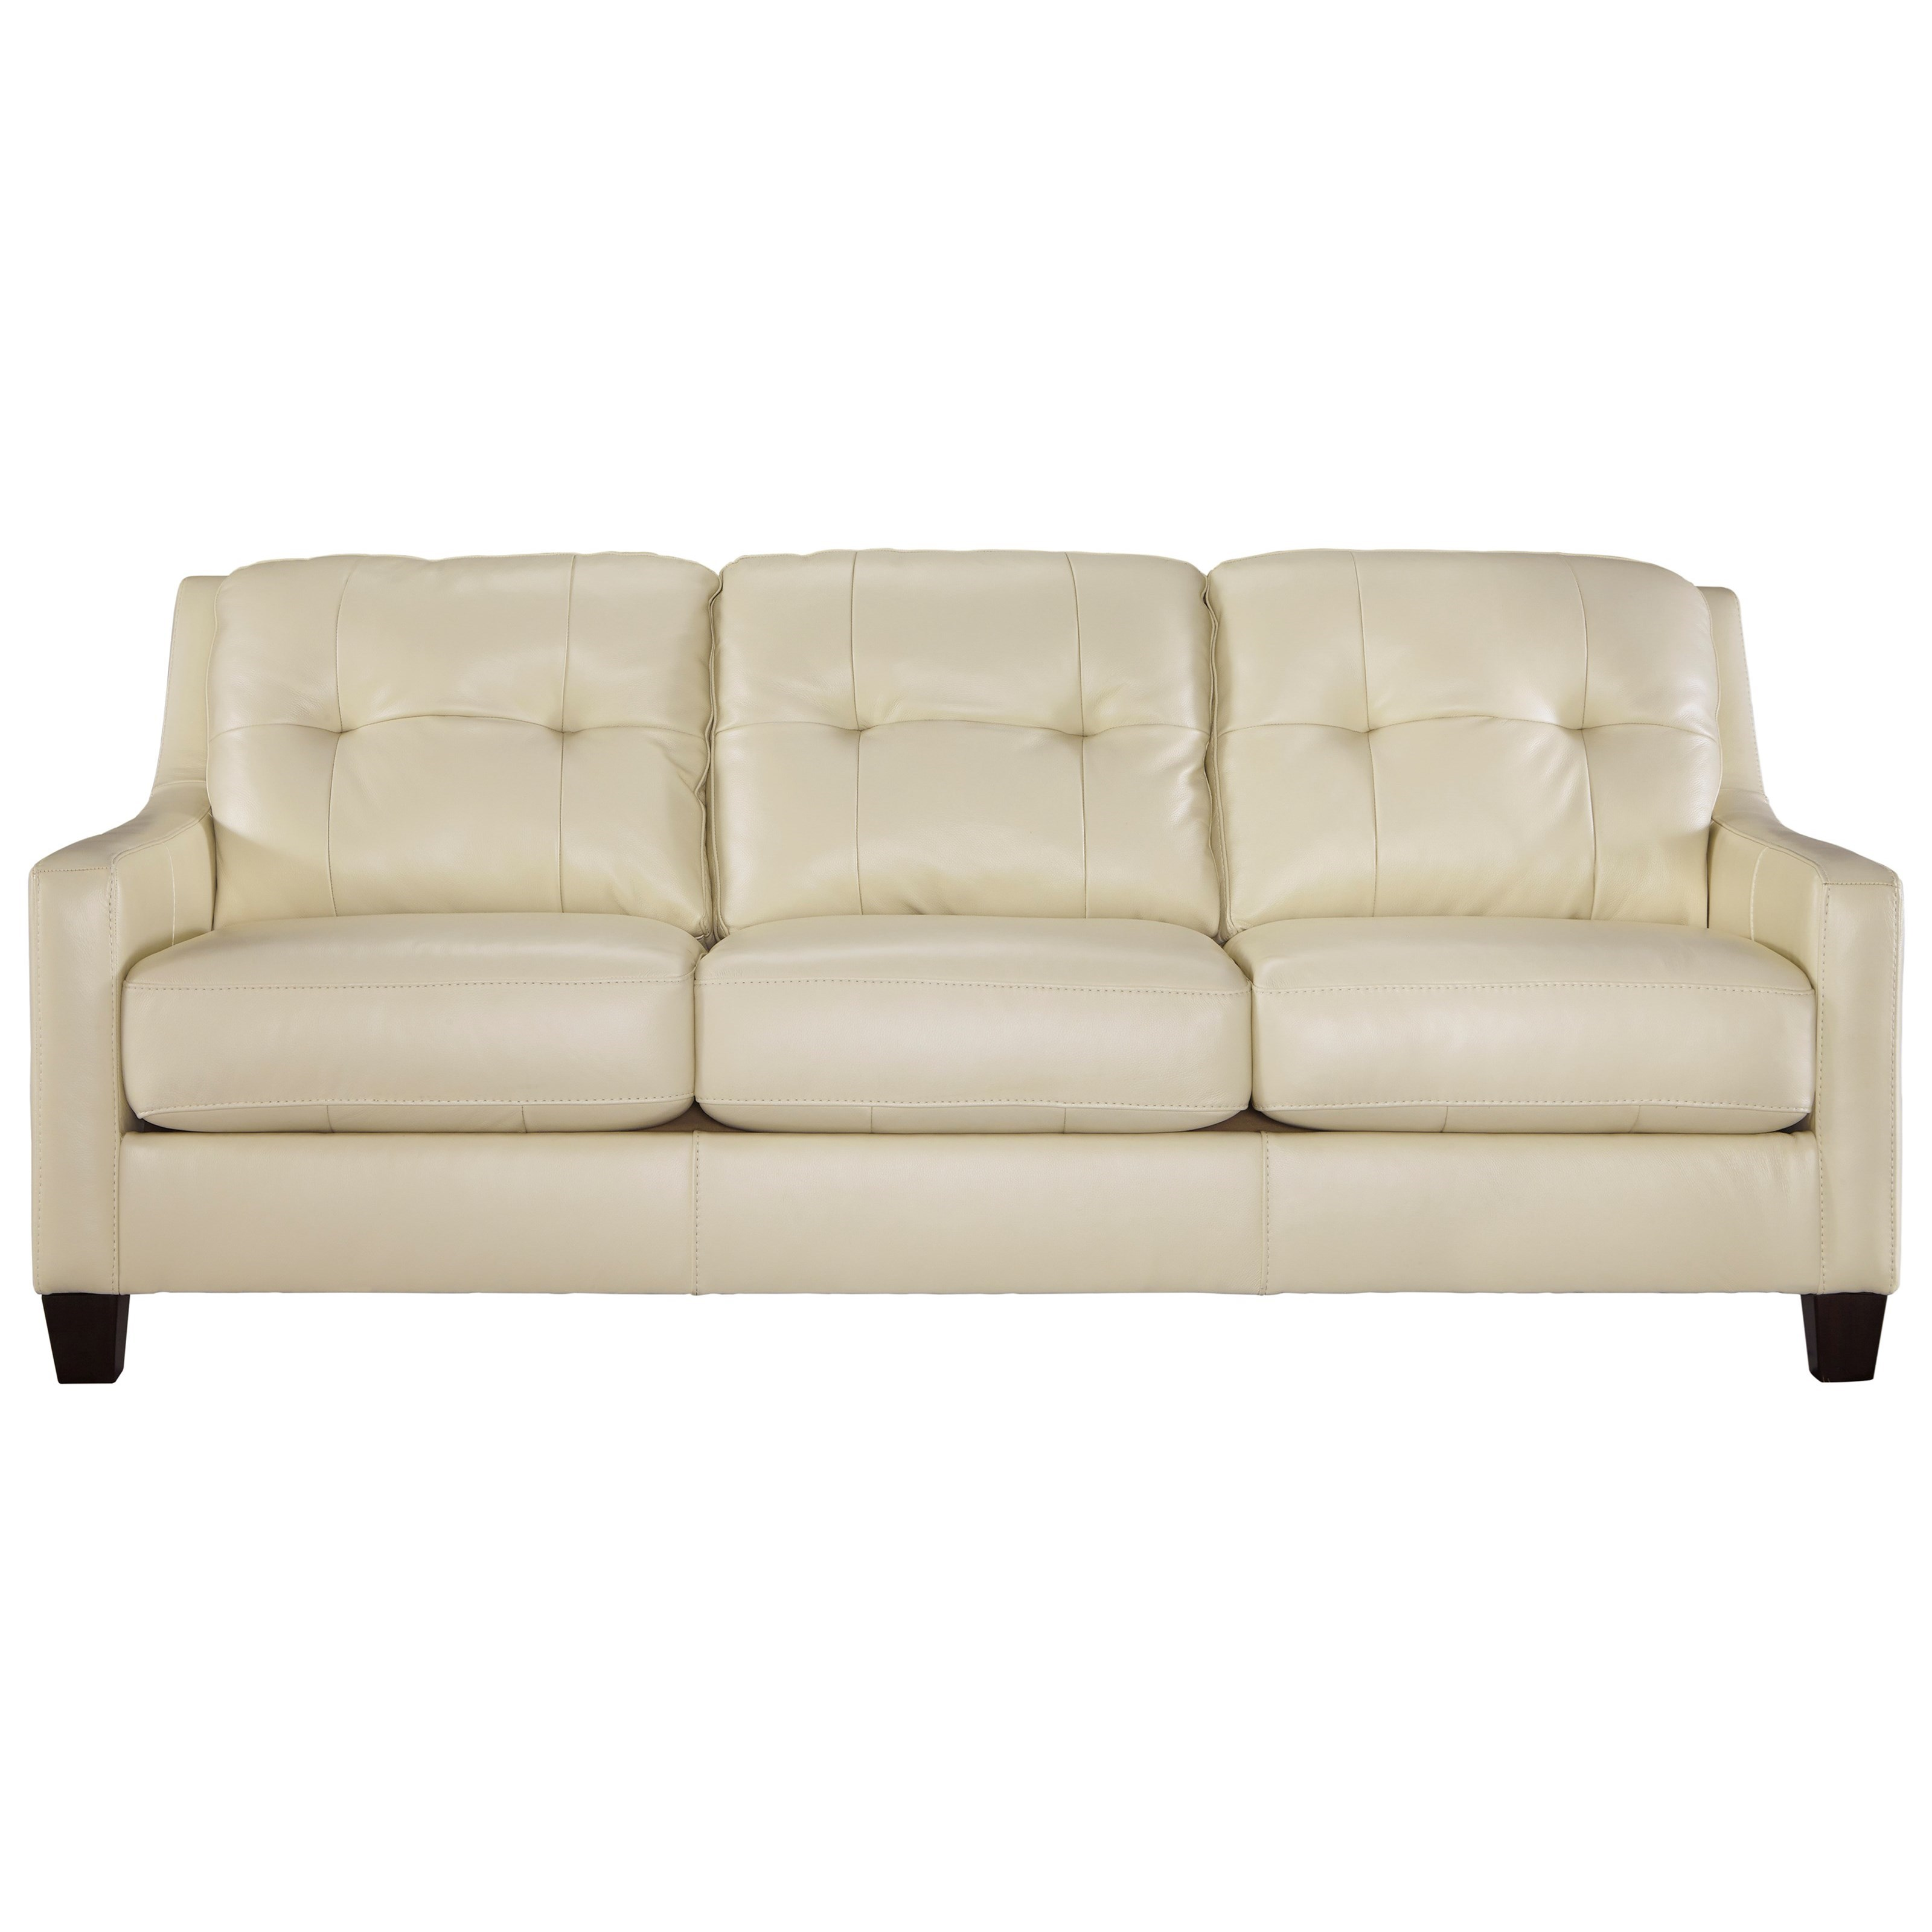 Contemporary Leather Match Queen Sofa Sleeper By Signature Design By Ashley Wolf And Gardiner